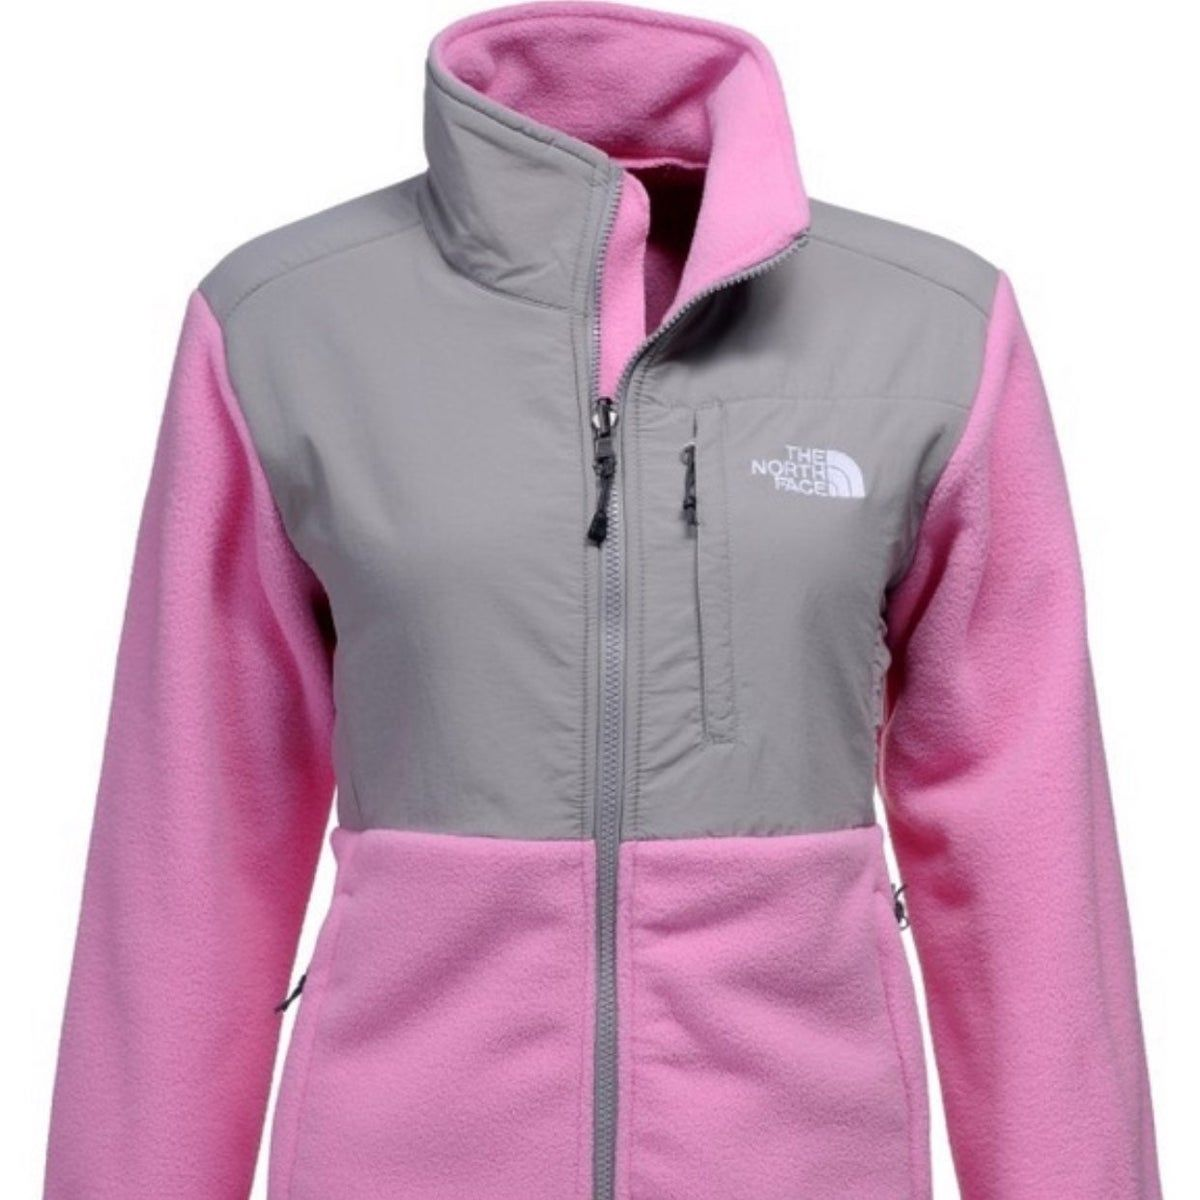 Pin By Joanna Bennett On Fall Pink North Face Pink North Face Jacket North Face Women [ 1200 x 1200 Pixel ]